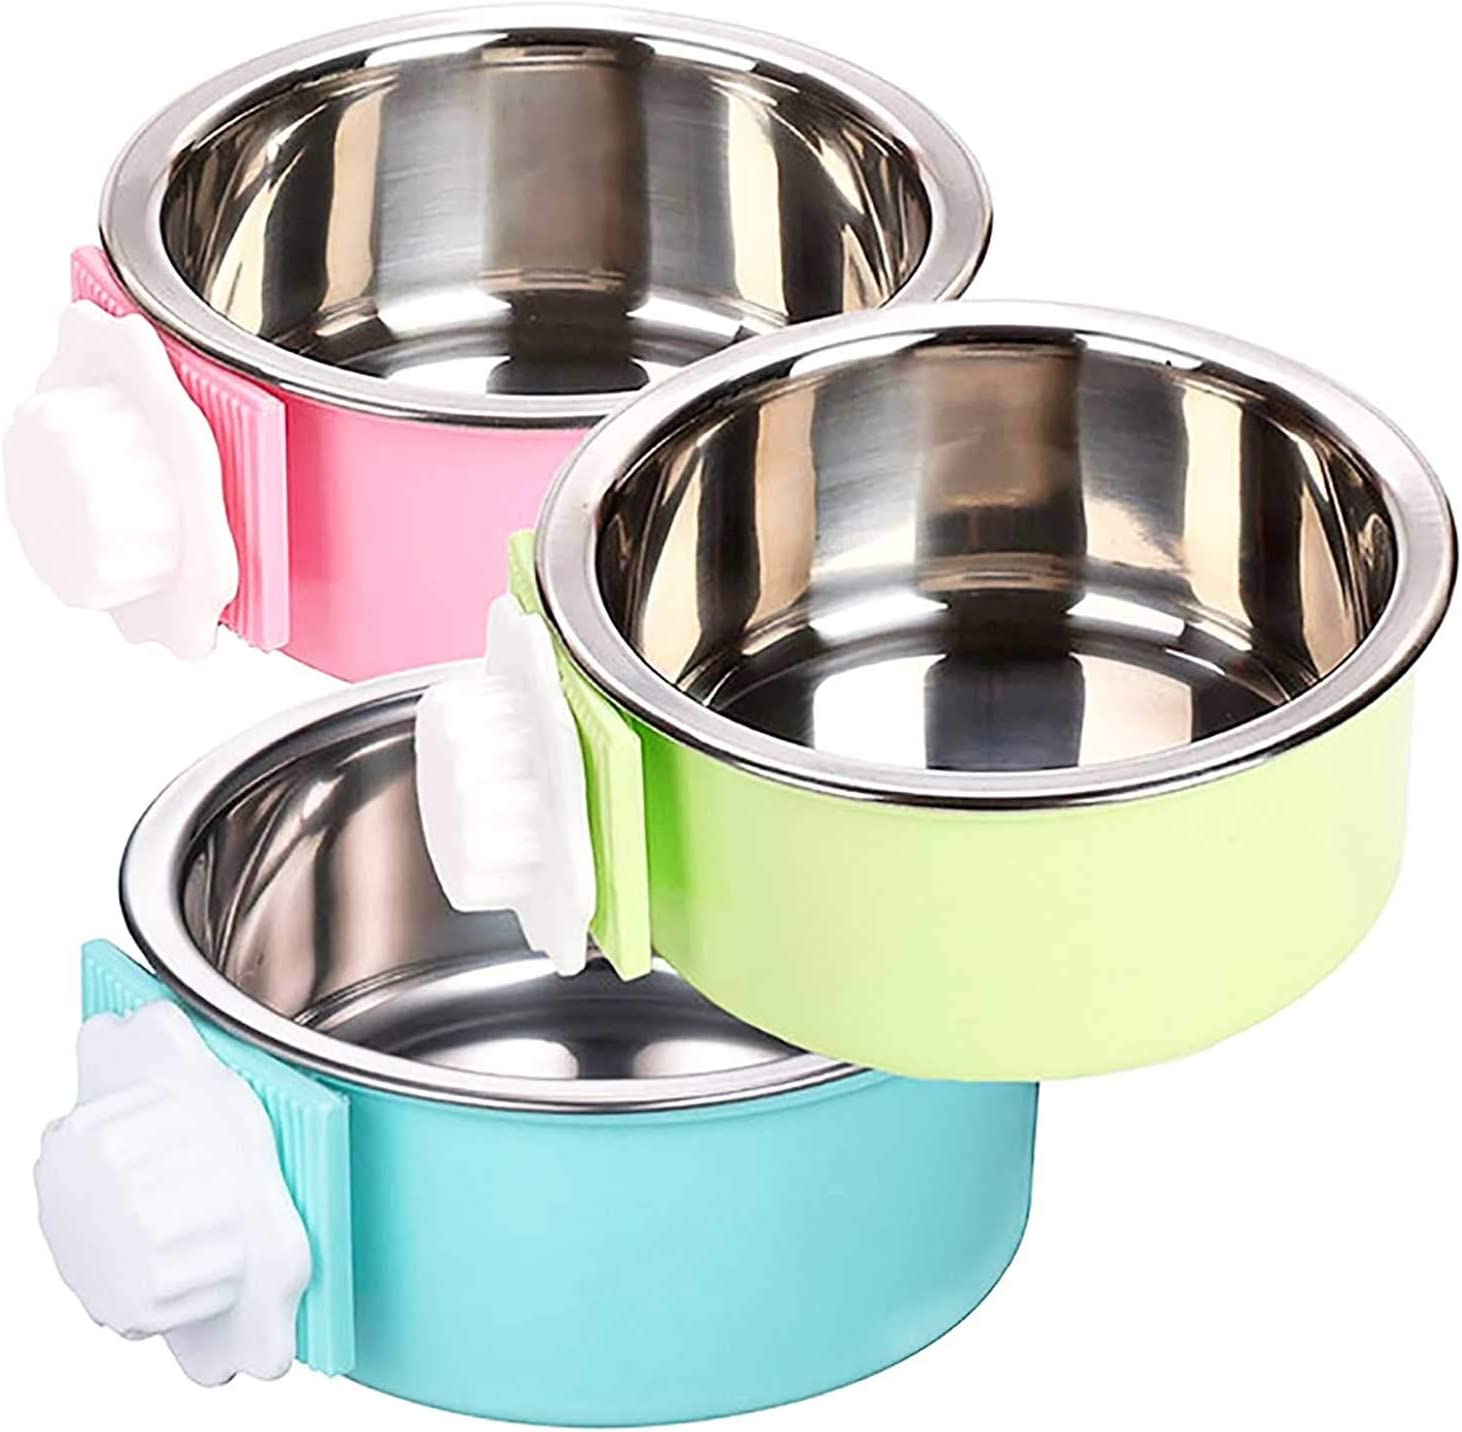 Crate Dog Water Food Bowls, Removable Hanging Stainless Steel Dog Bowls, 2-in-1 Plastic & Stainless Steel Pet Bowl, Crate Bowl for Cat, Dog,Puppy, Birds, Guinea Pigs,Rabbits and Other Small Pets.